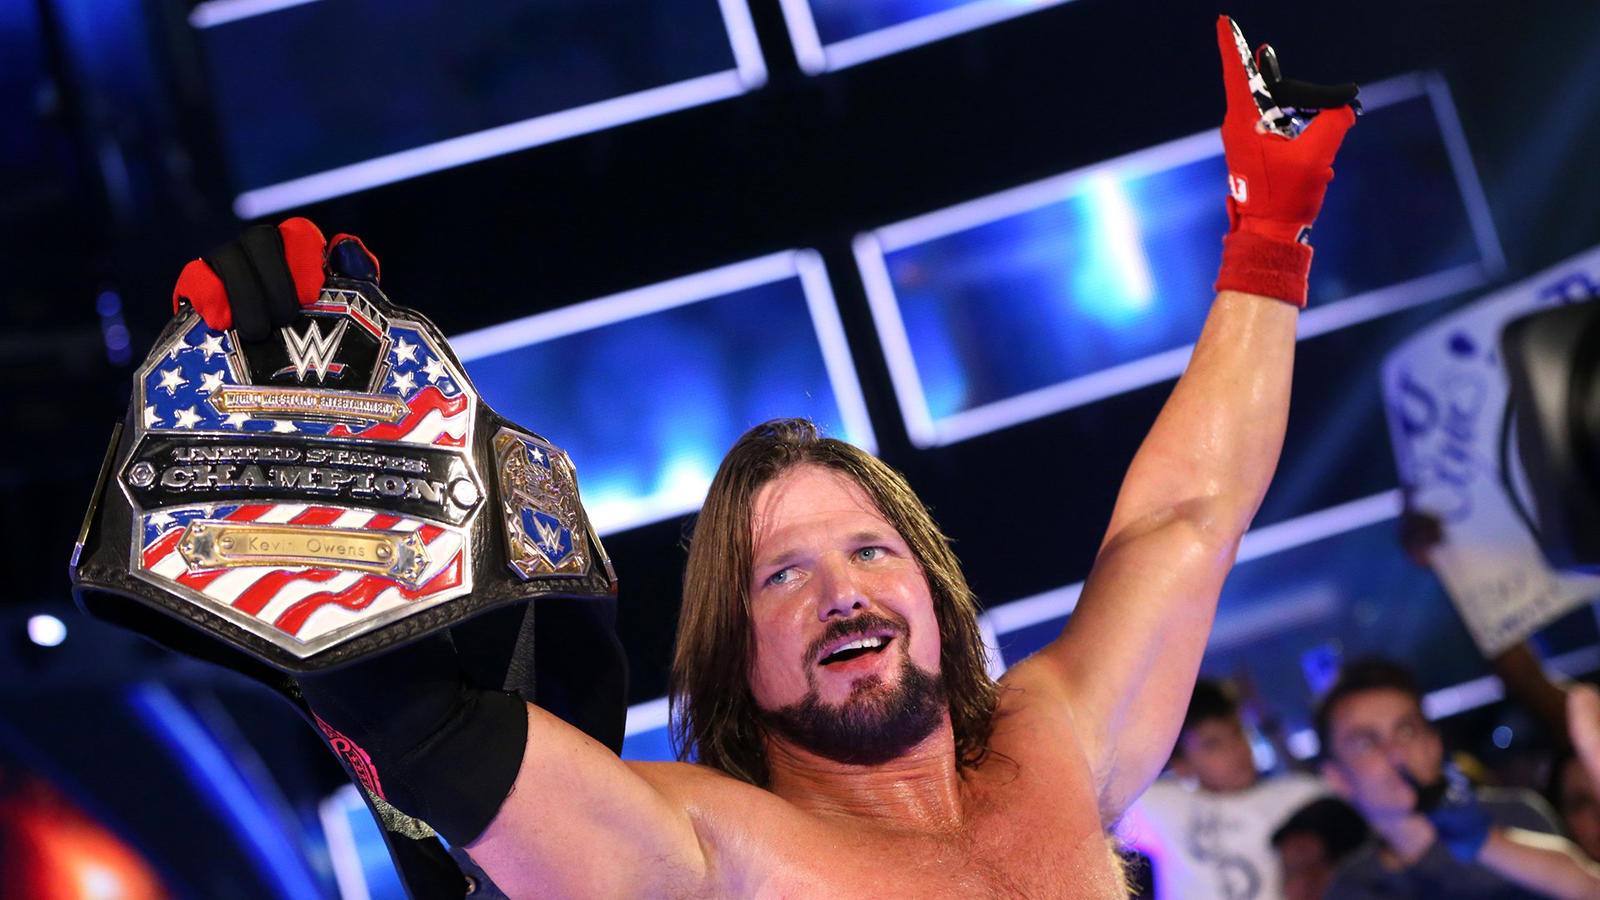 WWE SmackDown LIVE results, July 25, 2017: Styles spoils Jericho's return and KO's reign, regains United States Title